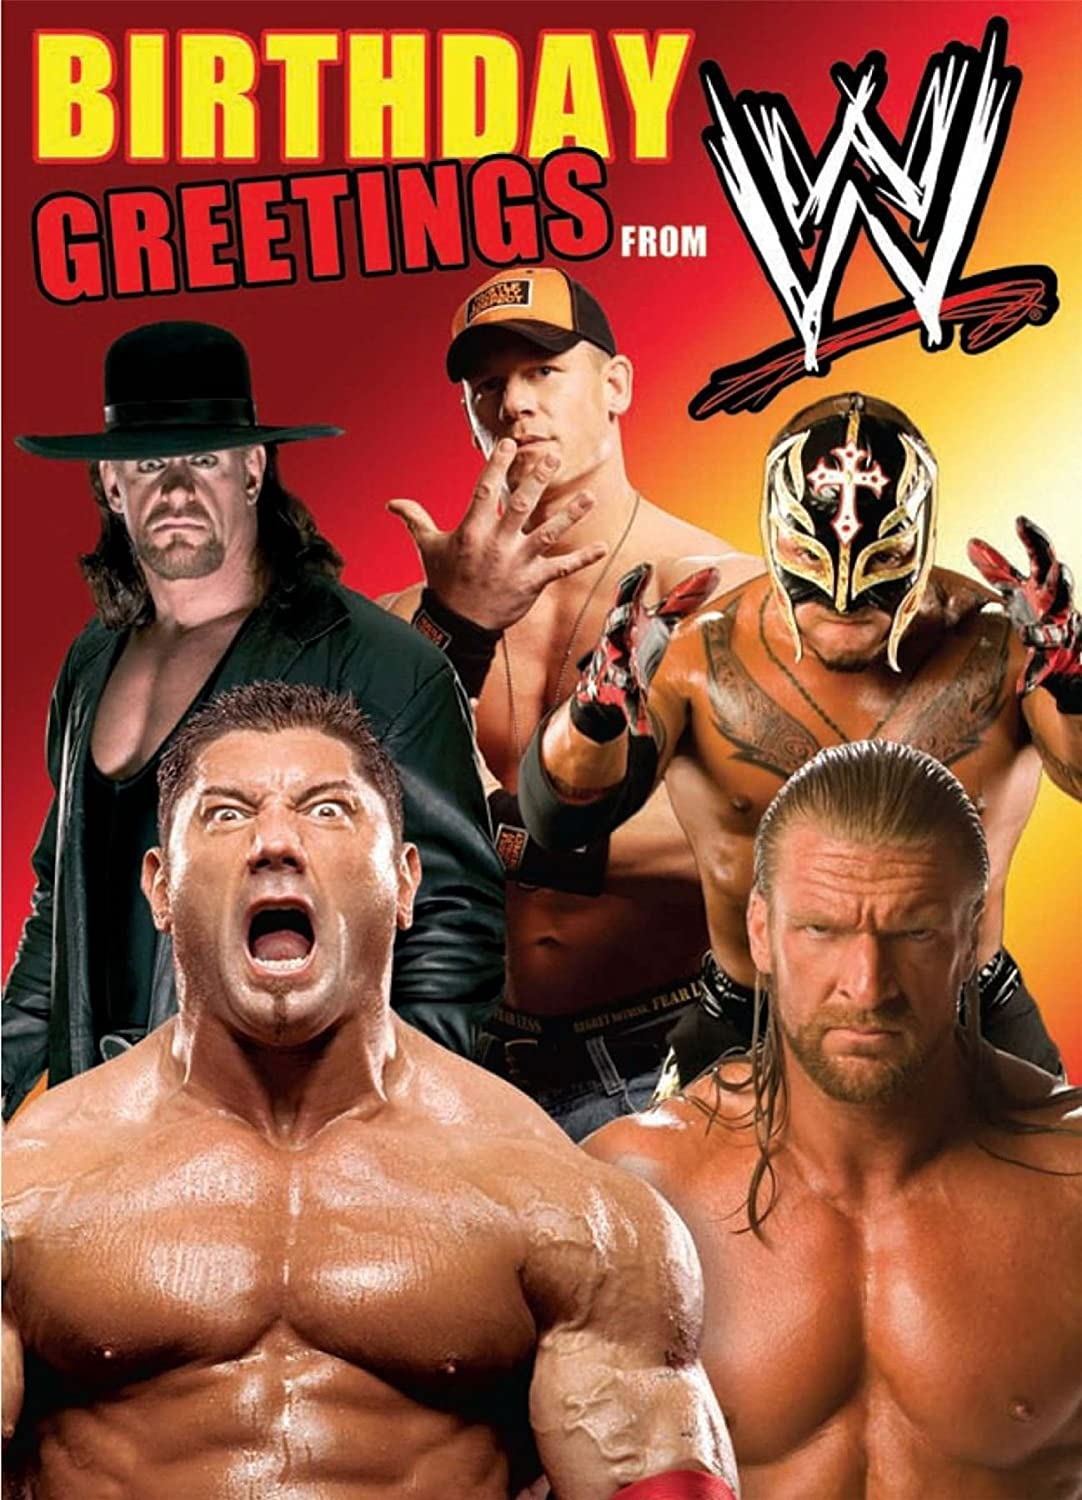 Official Wwe Birthday Card With Recorded Message For The Birthday